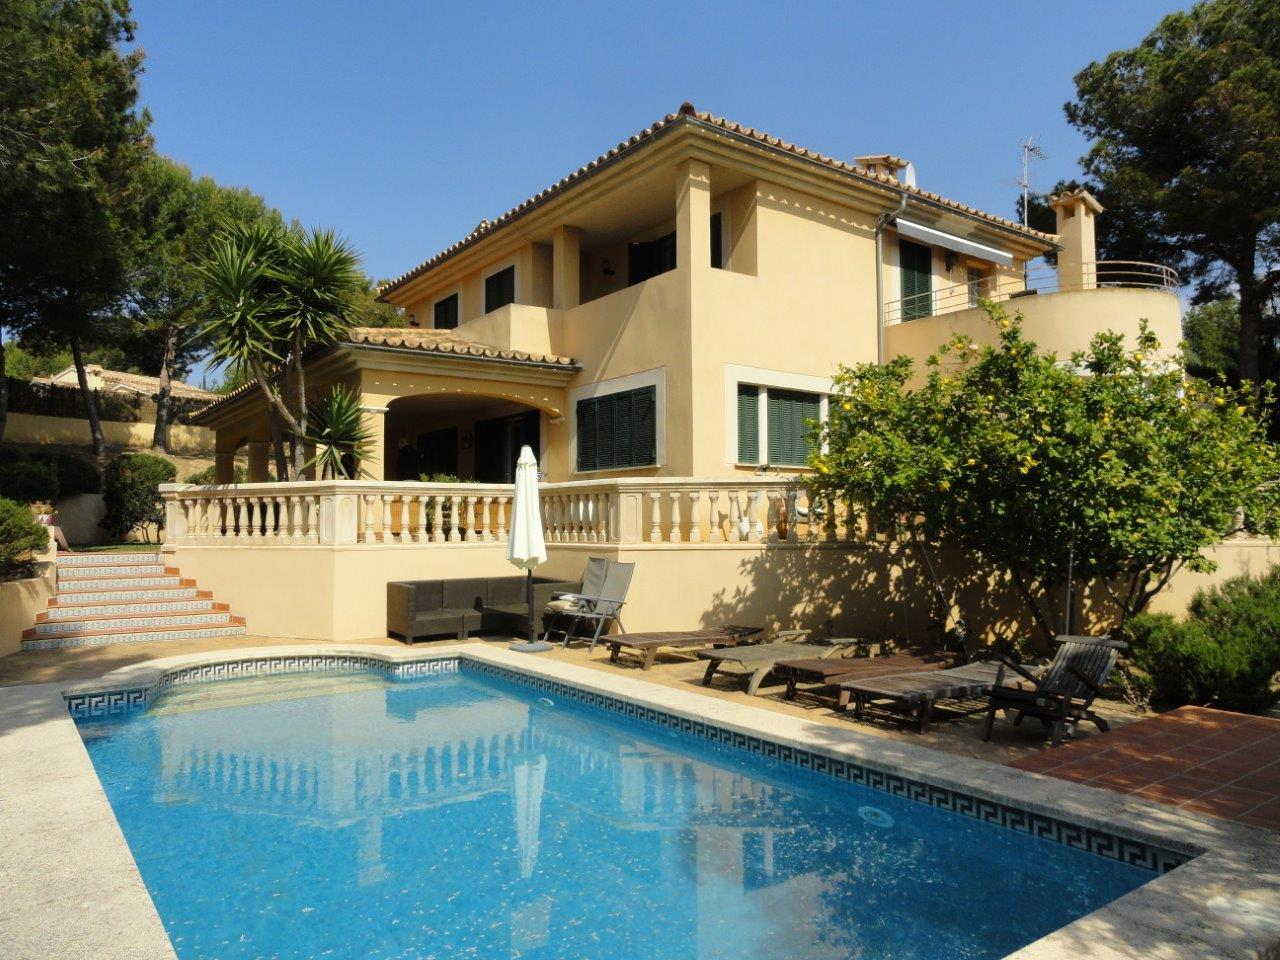 Mallorca - Nova Santa Ponsa - Villa / detached house